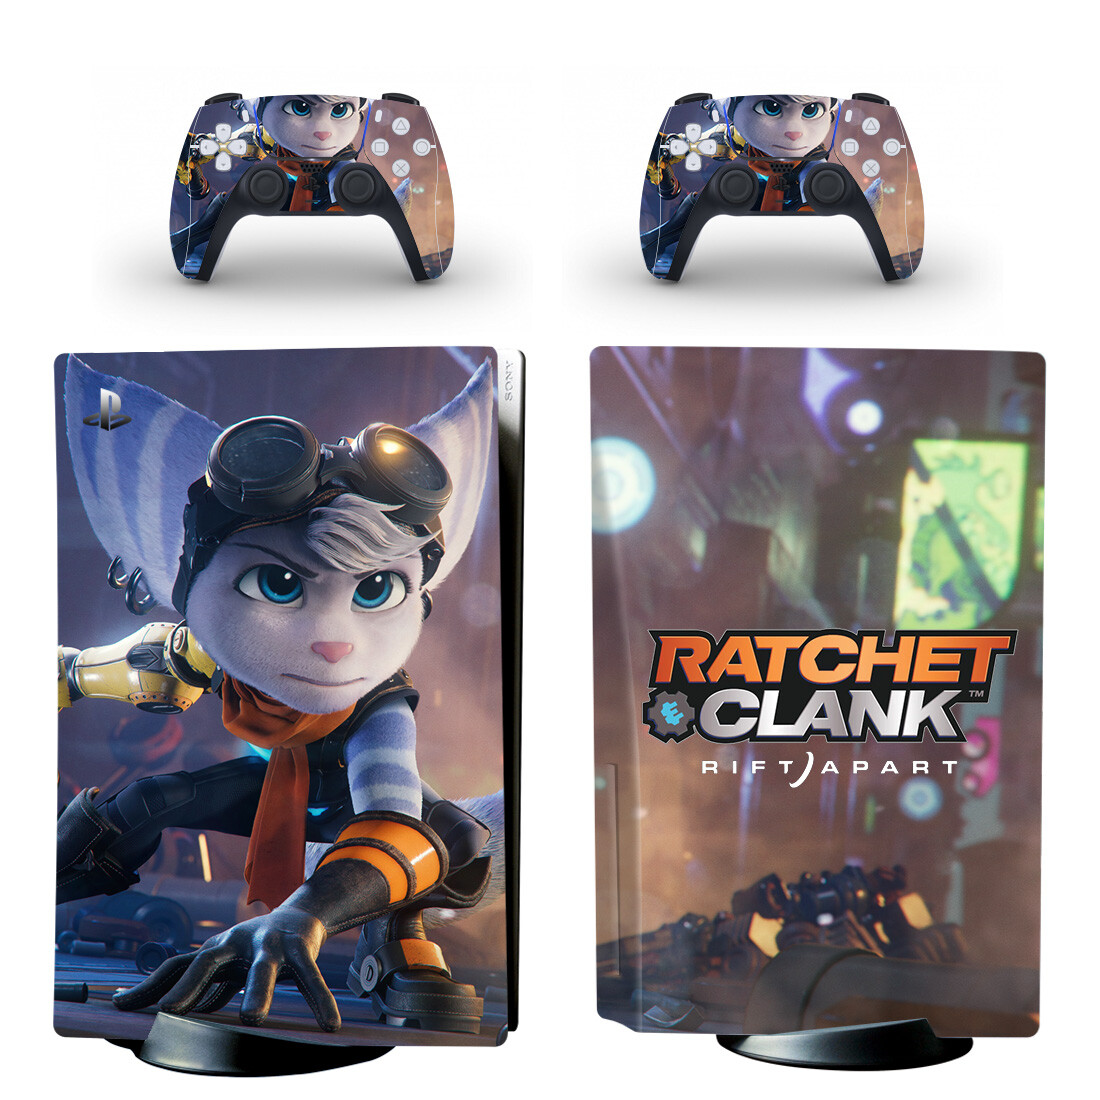 Ratchet And Clank Skin Sticker For PlayStation 5 And Controllers